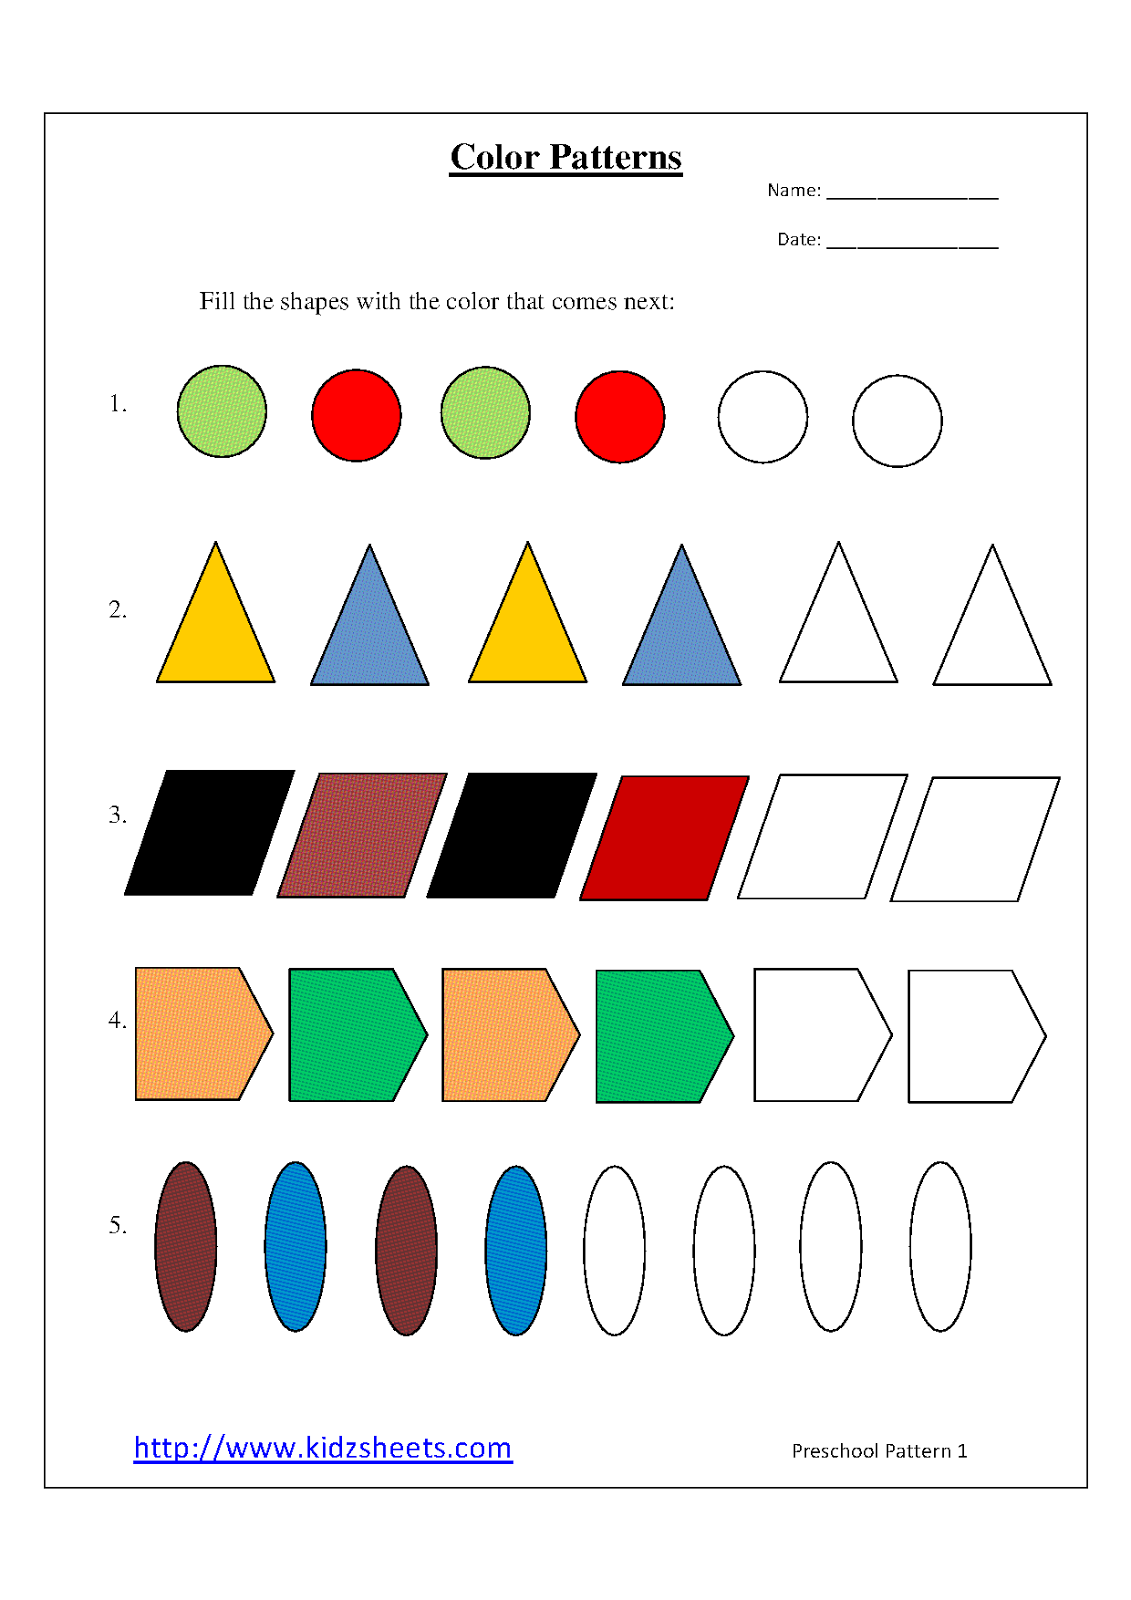 Printables Preschool Pattern Worksheets kidz worksheets preschool color patterns worksheet1 patterns